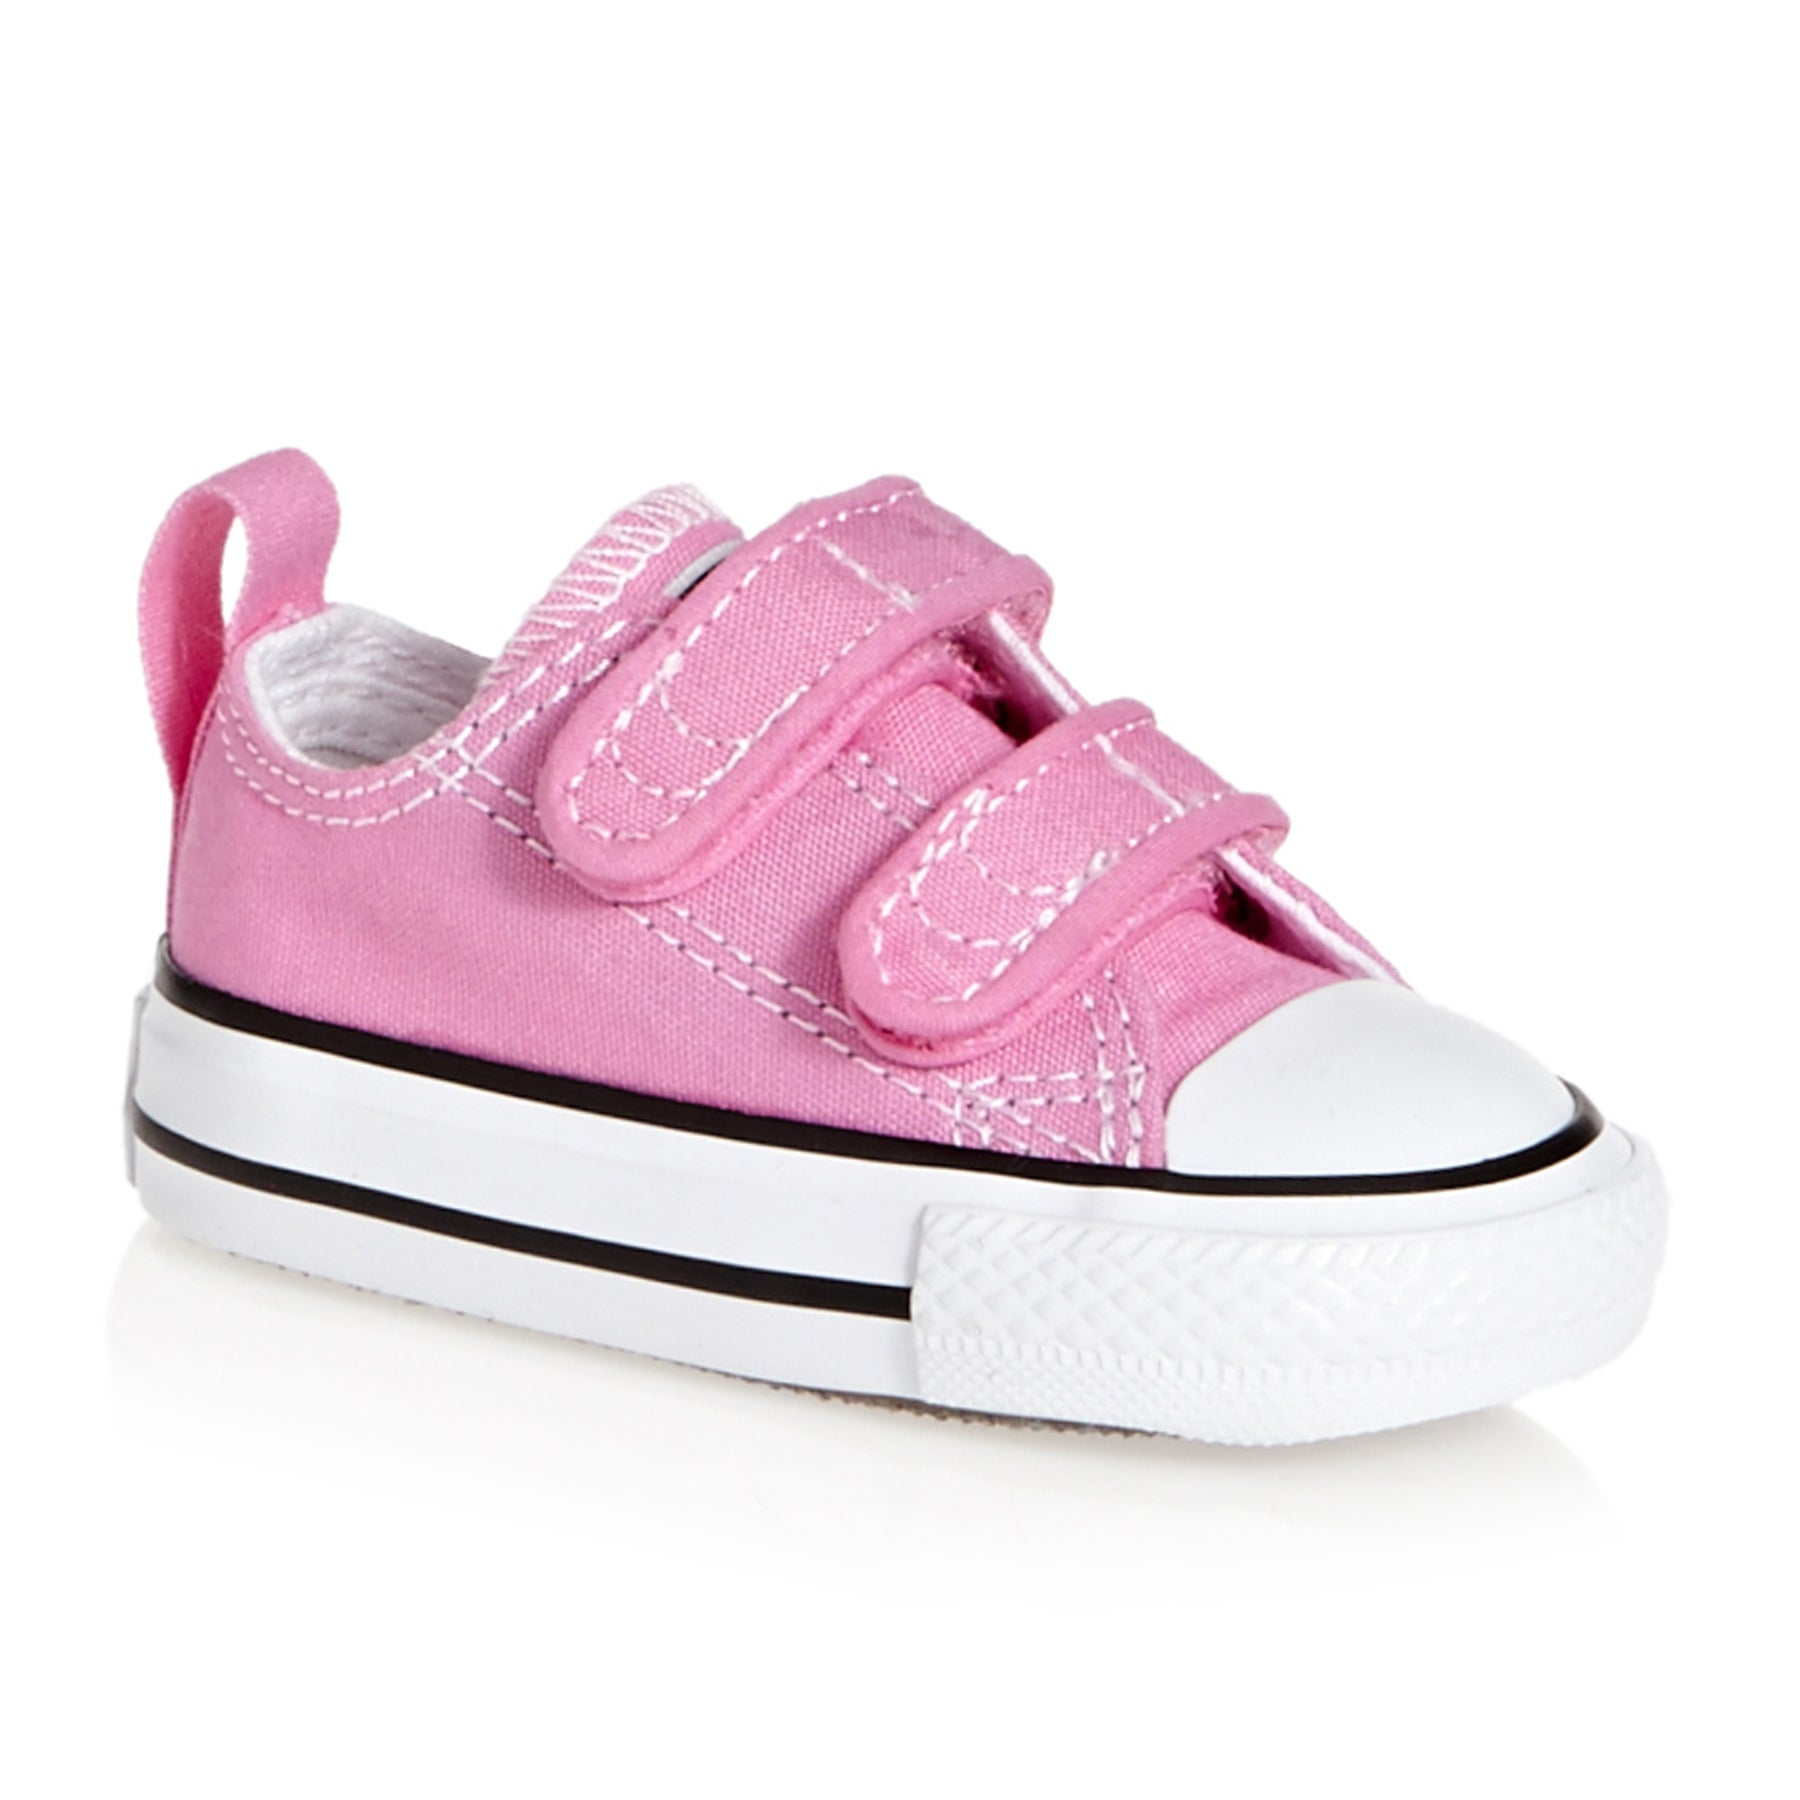 b807411288bc Converse Chuck Taylor All Star 2v Ox Baby Shoes available from Surfdome